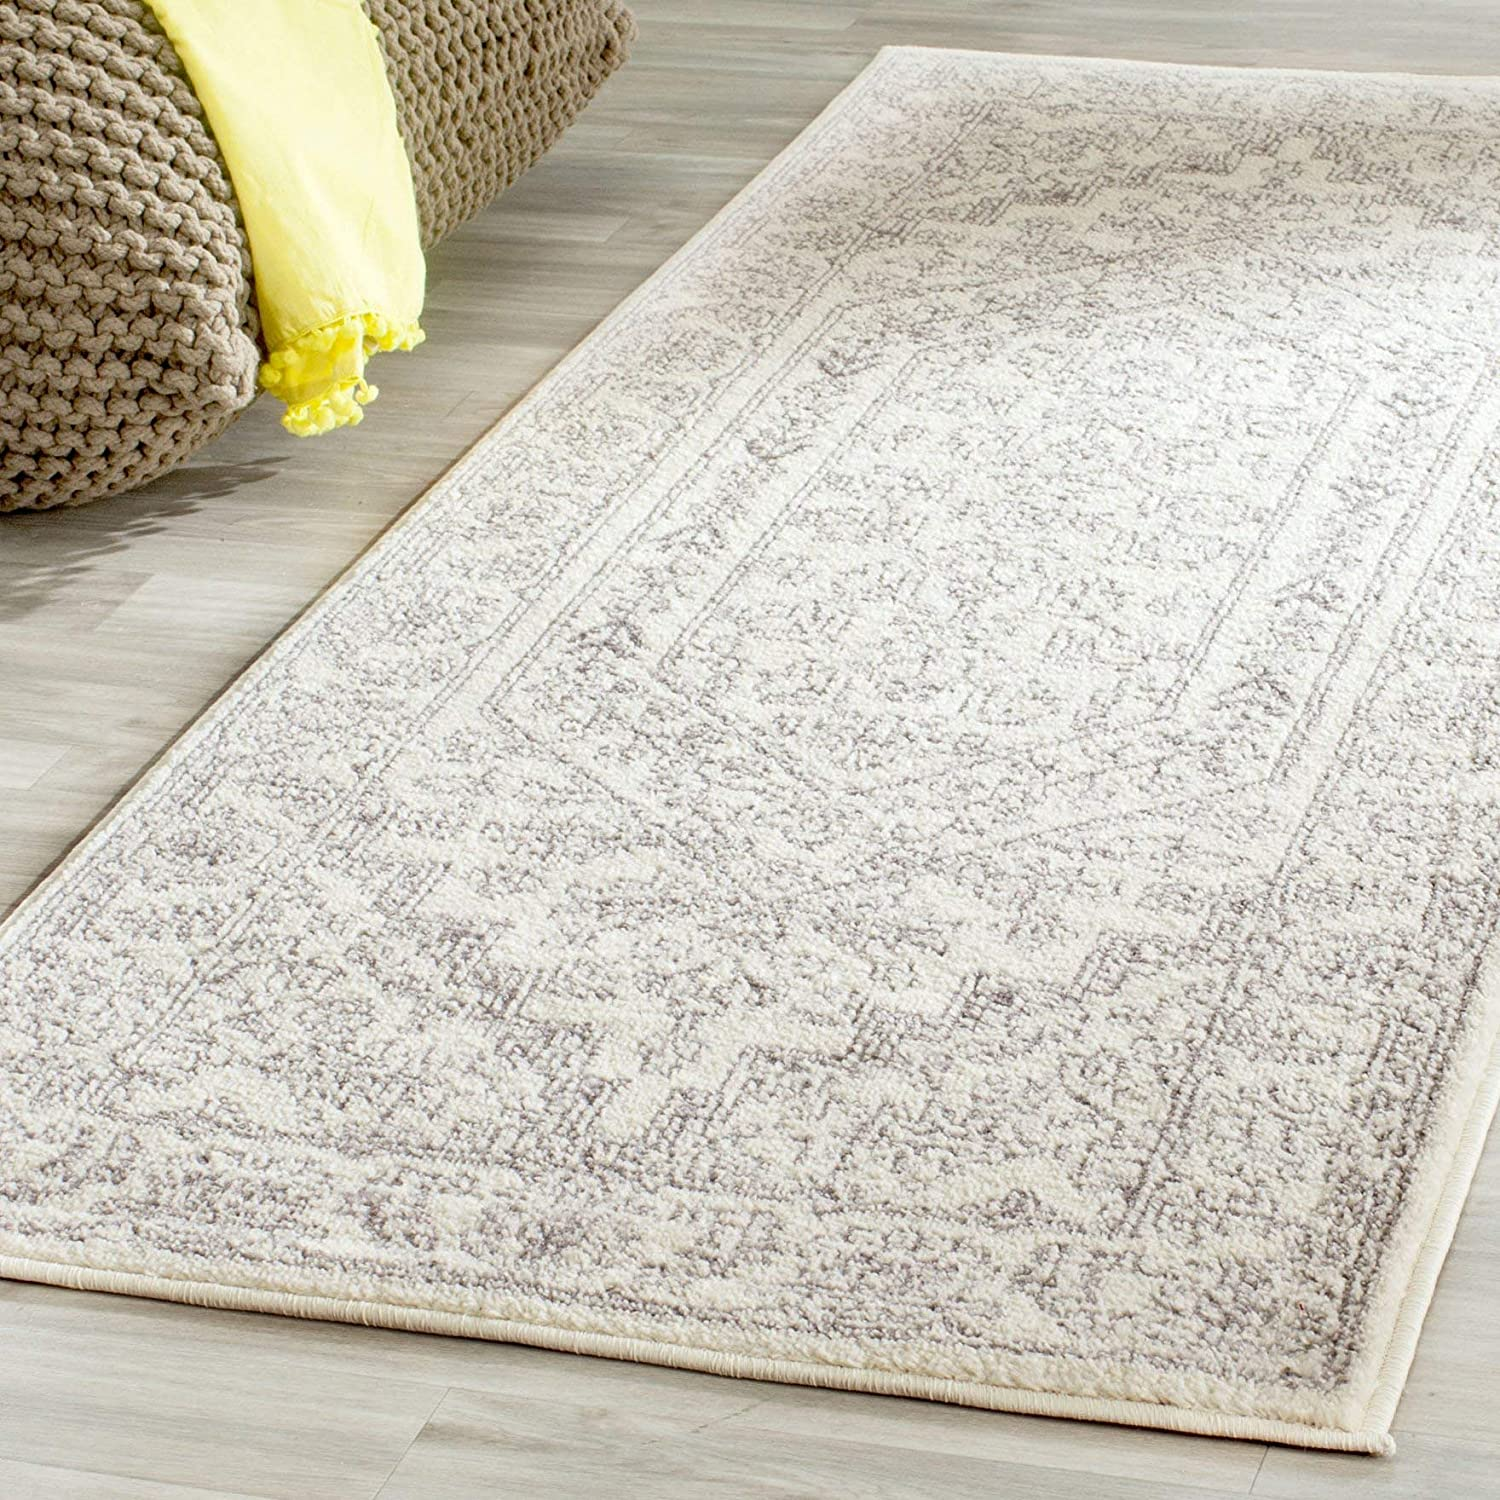 "Safavieh Adirondack Collection ADR108B Ivory and Silver Oriental Vintage Medallion Area Rug (2'6"" x 4')"